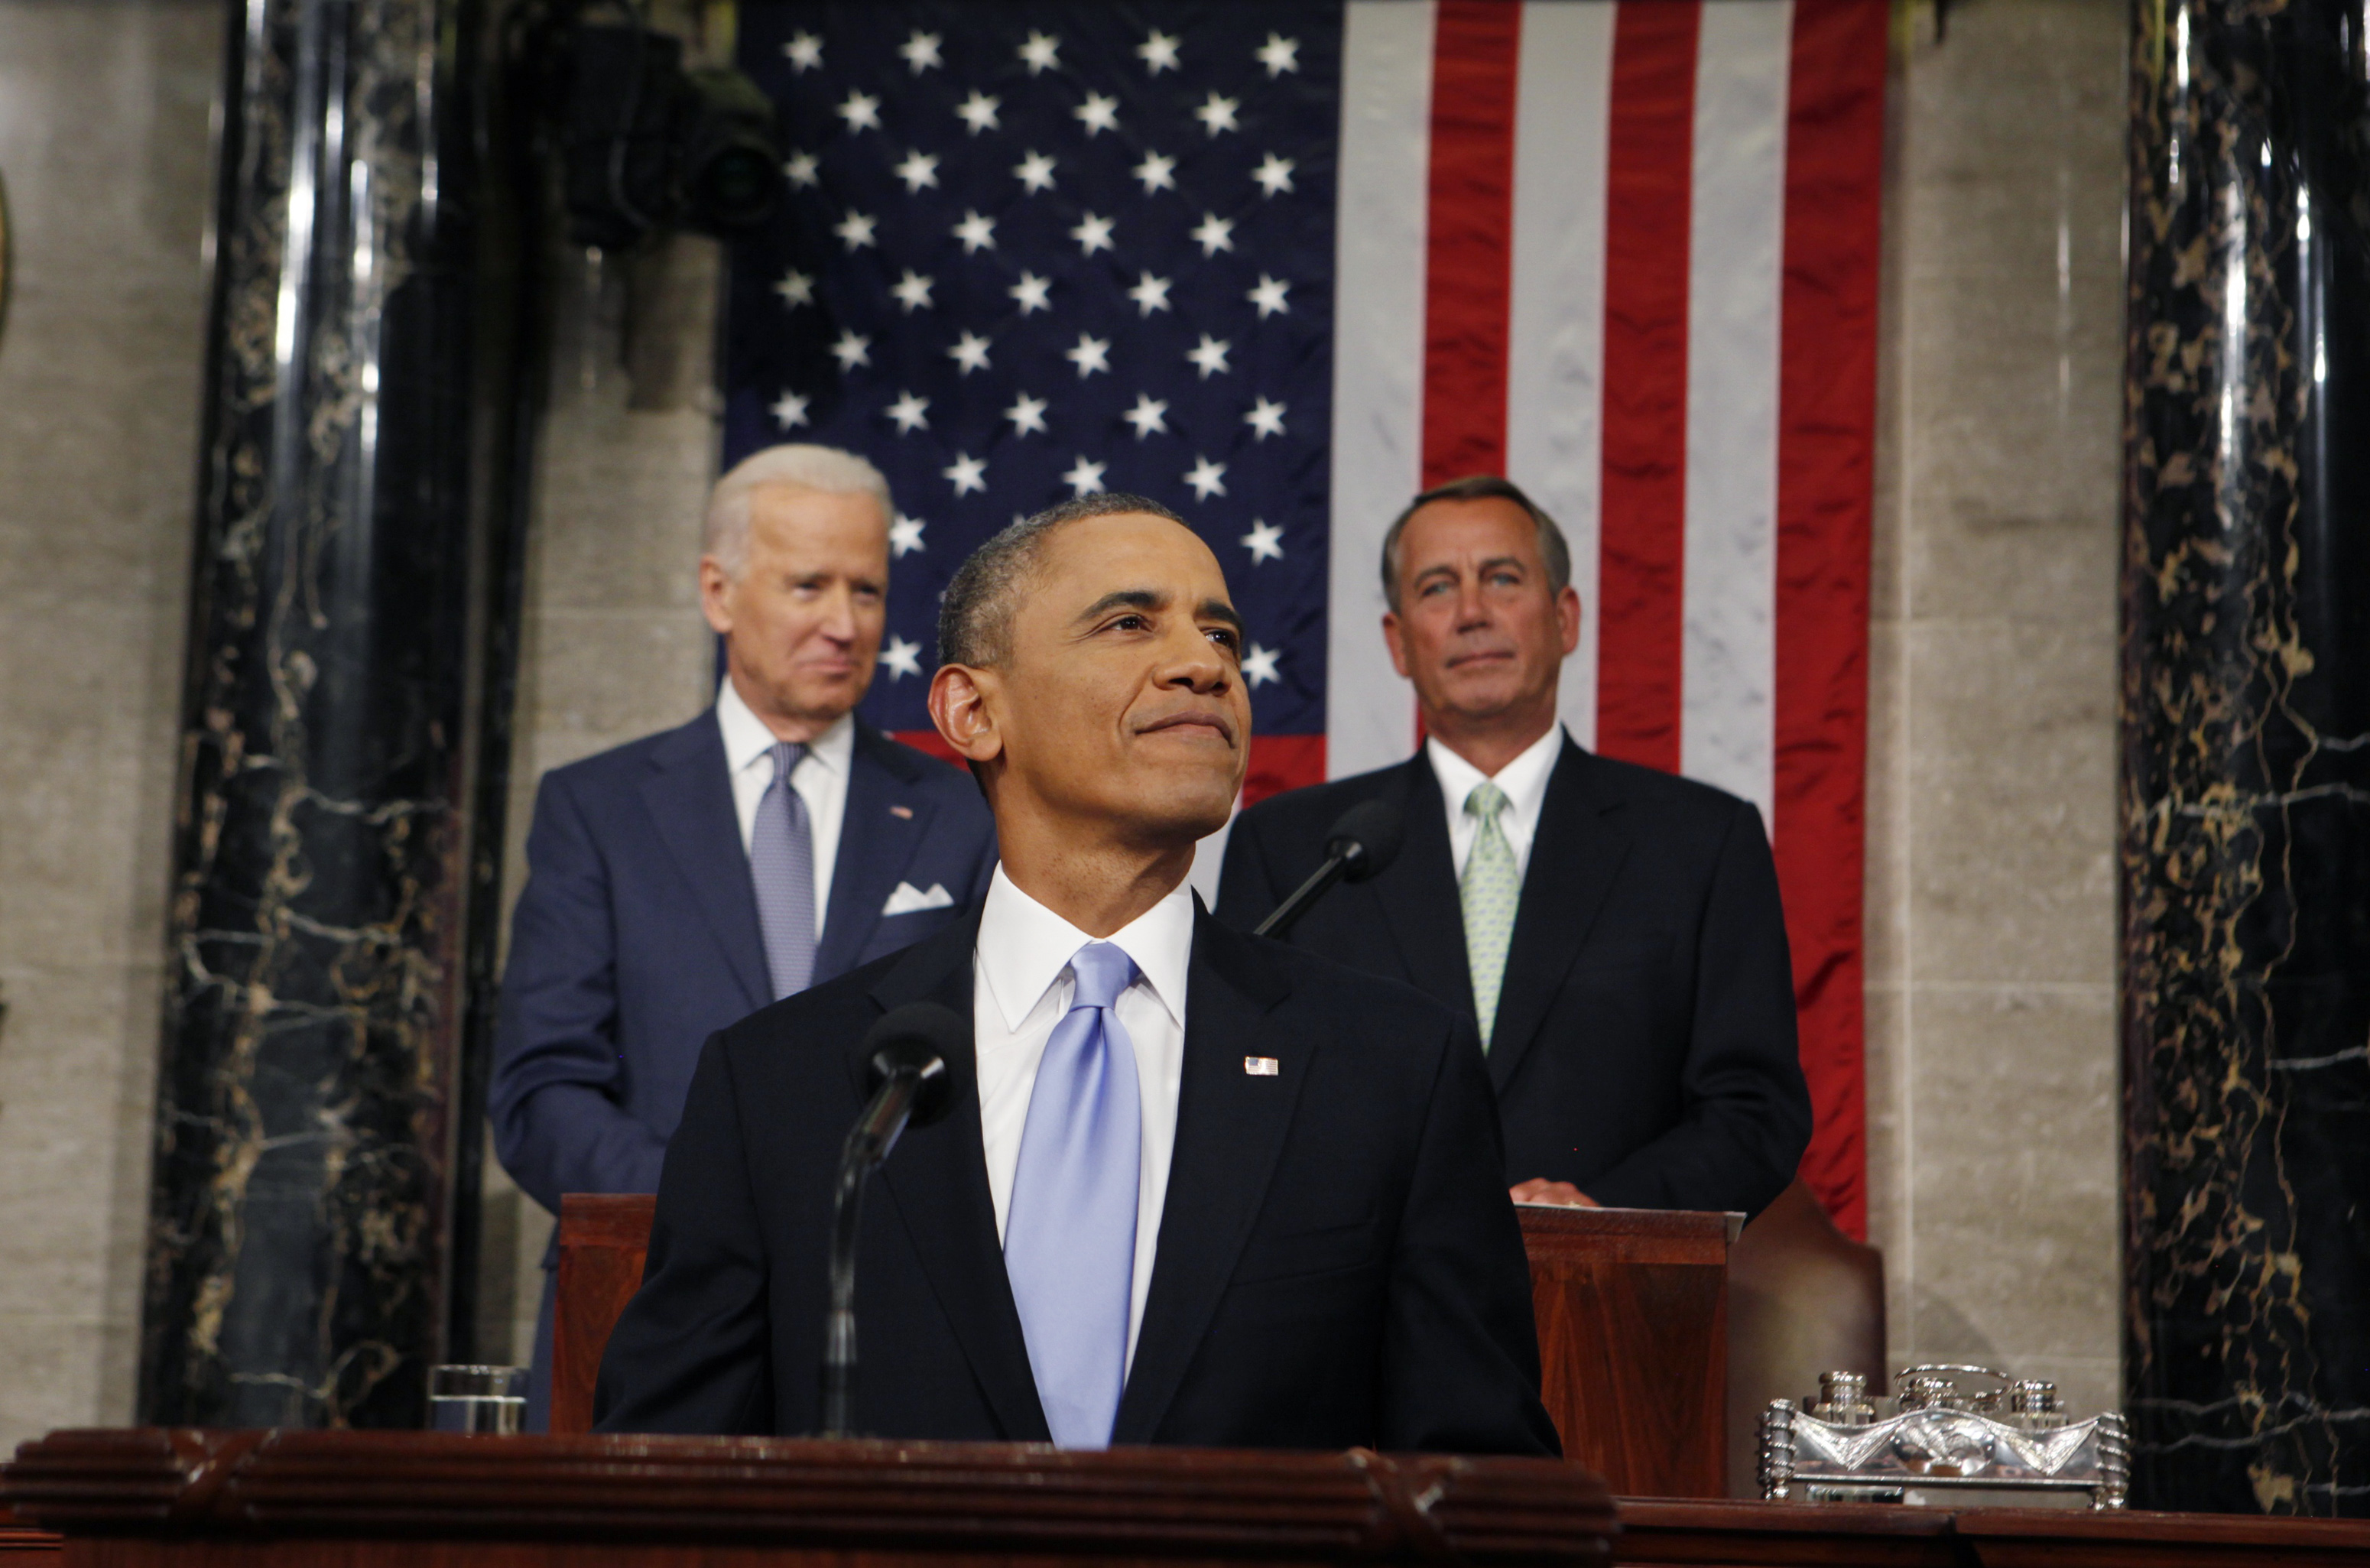 U.S. President Barack Obama smiles as he arrives to deliver his State of the Union speech on Capitol Hill in Washington on January 28, 2014.